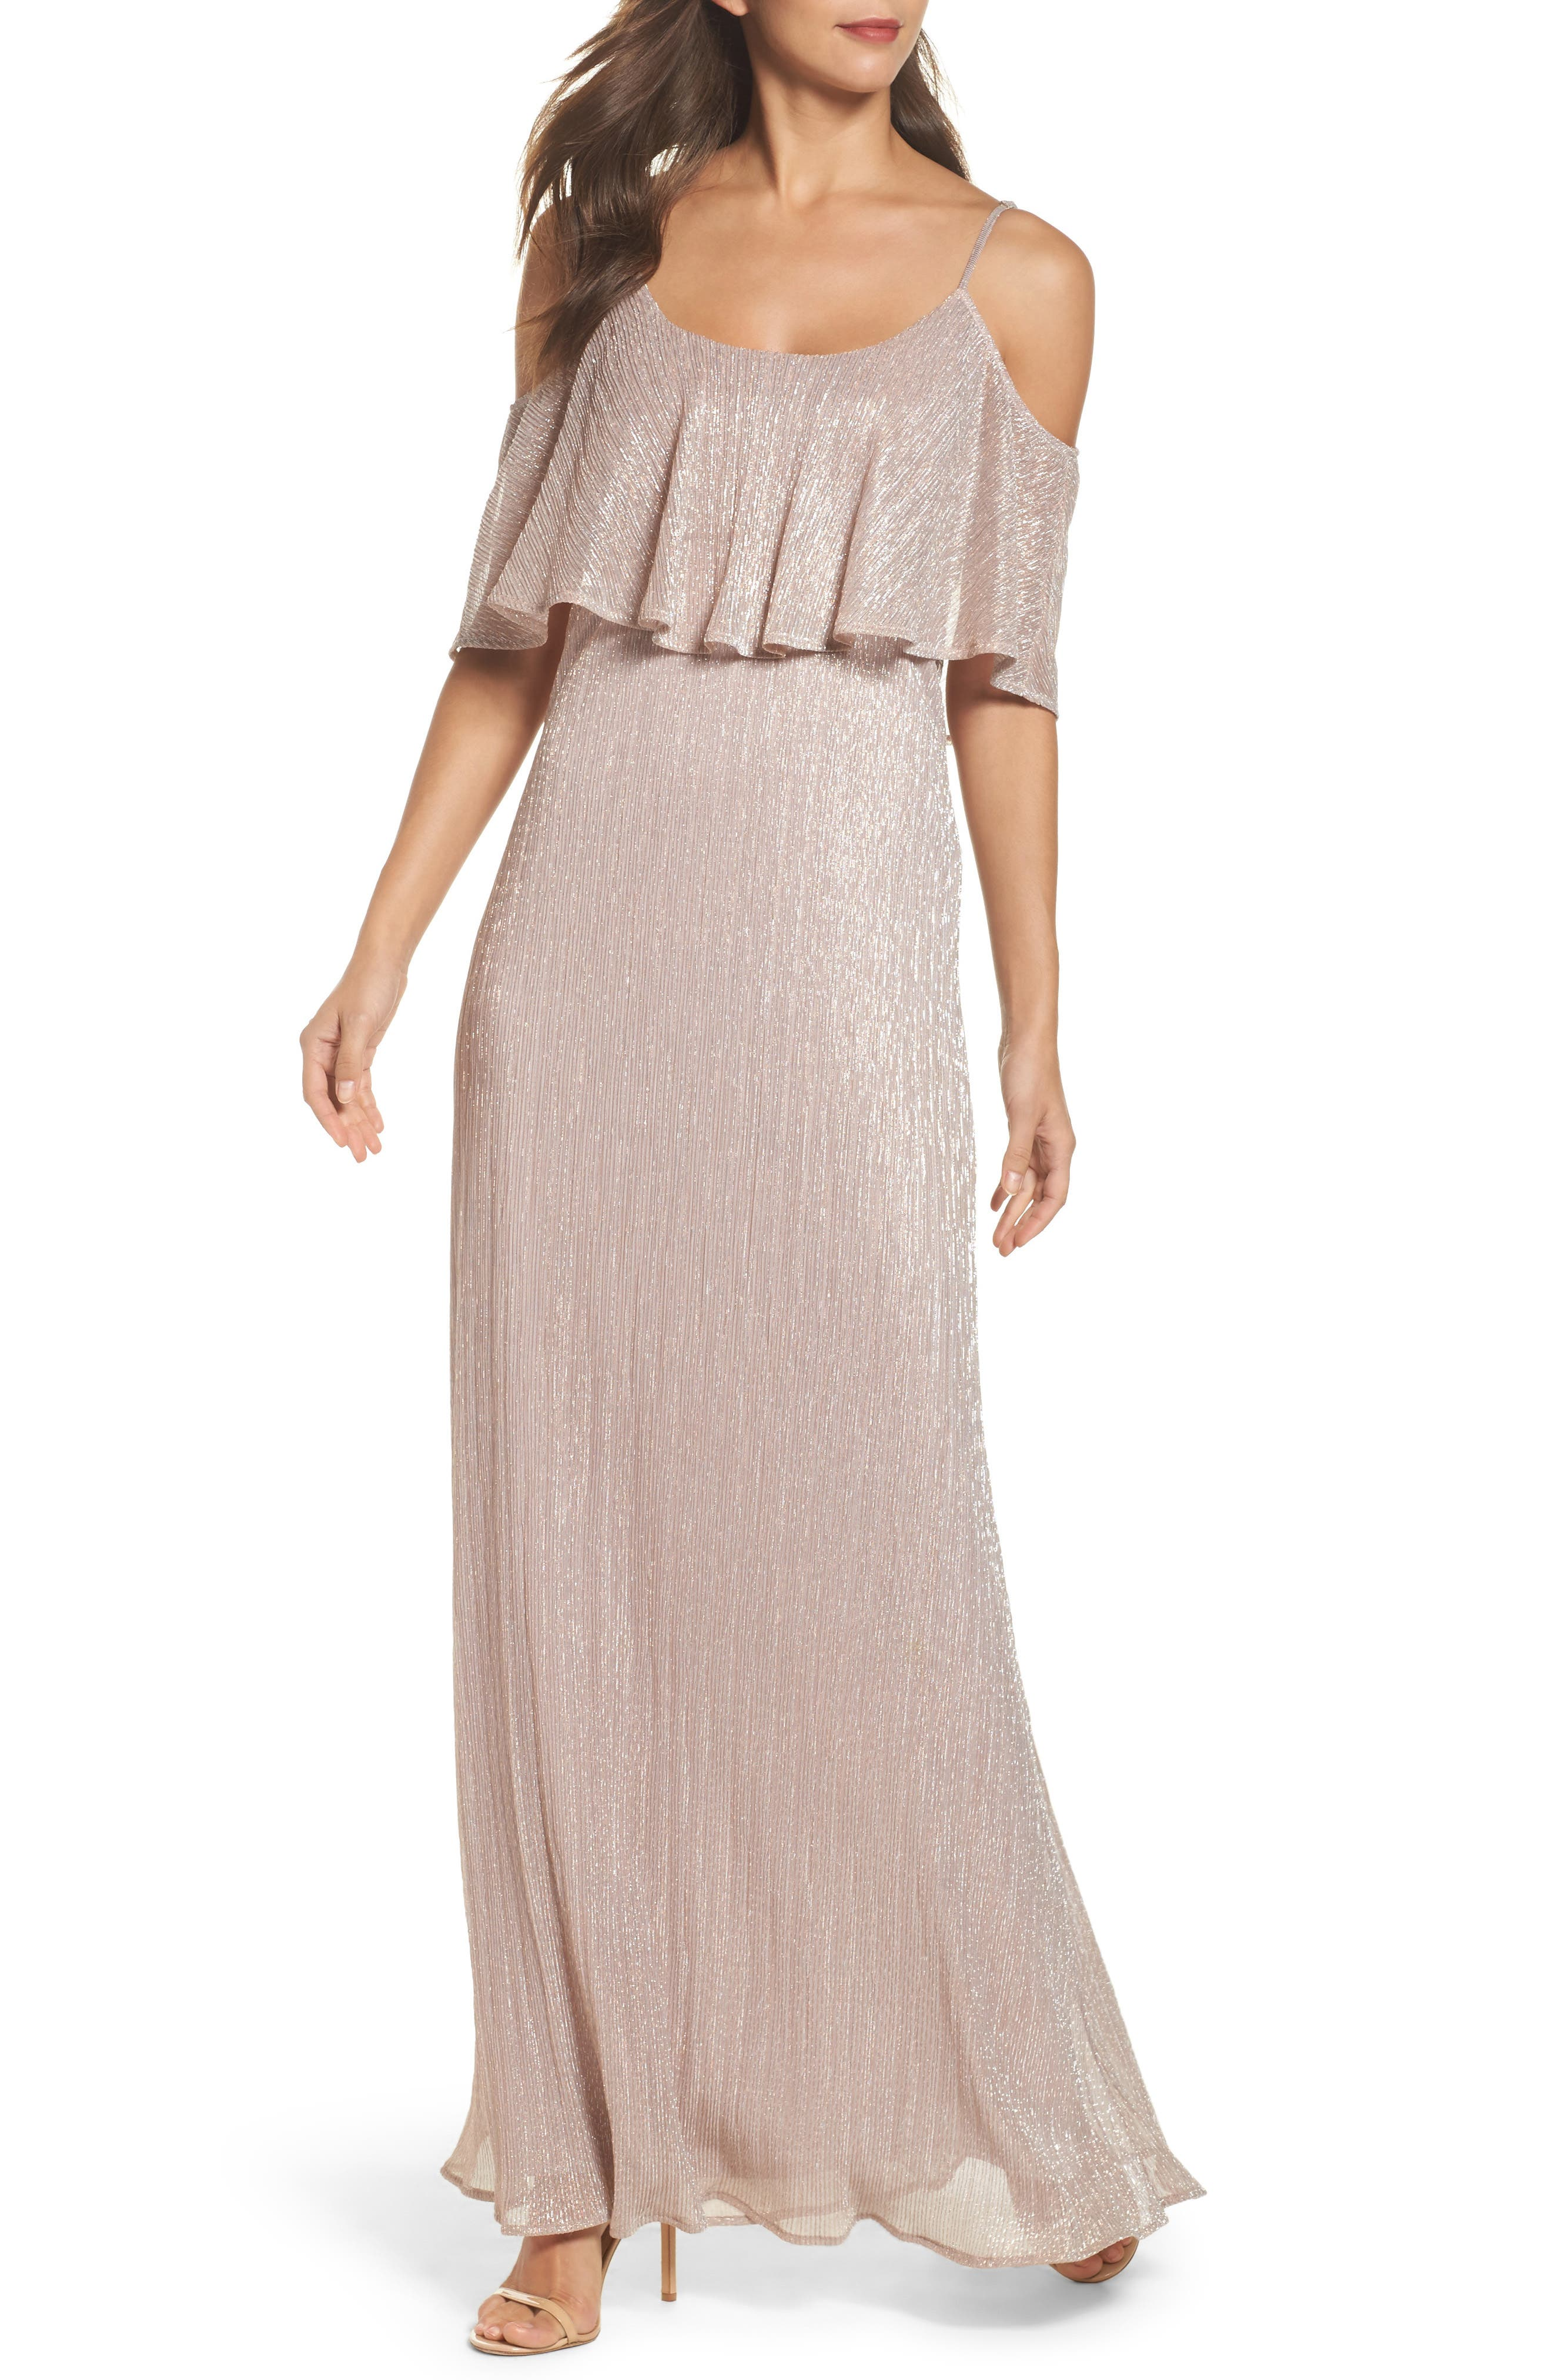 Caitlin Ruffle Maxi Dress,                         Main,                         color, Magic Muave Glitter